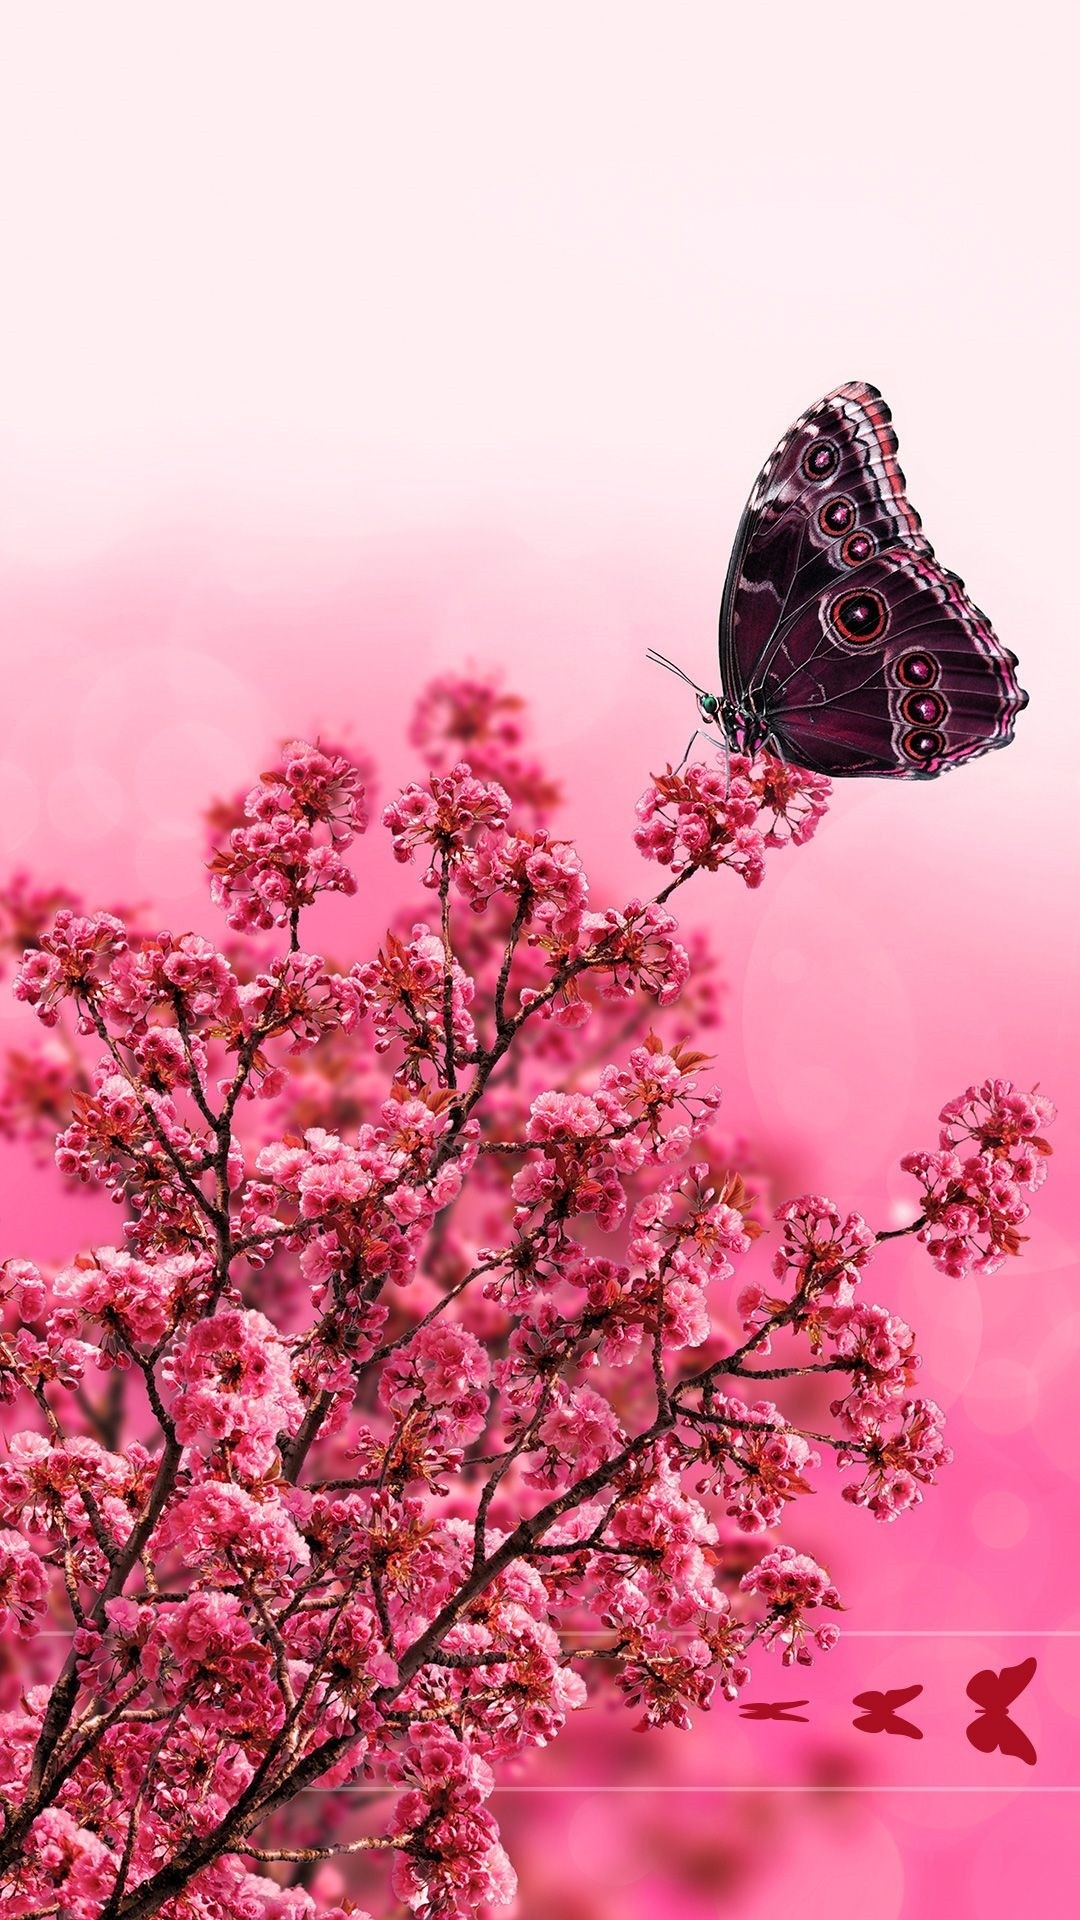 Aesthetic Butterfly iphone